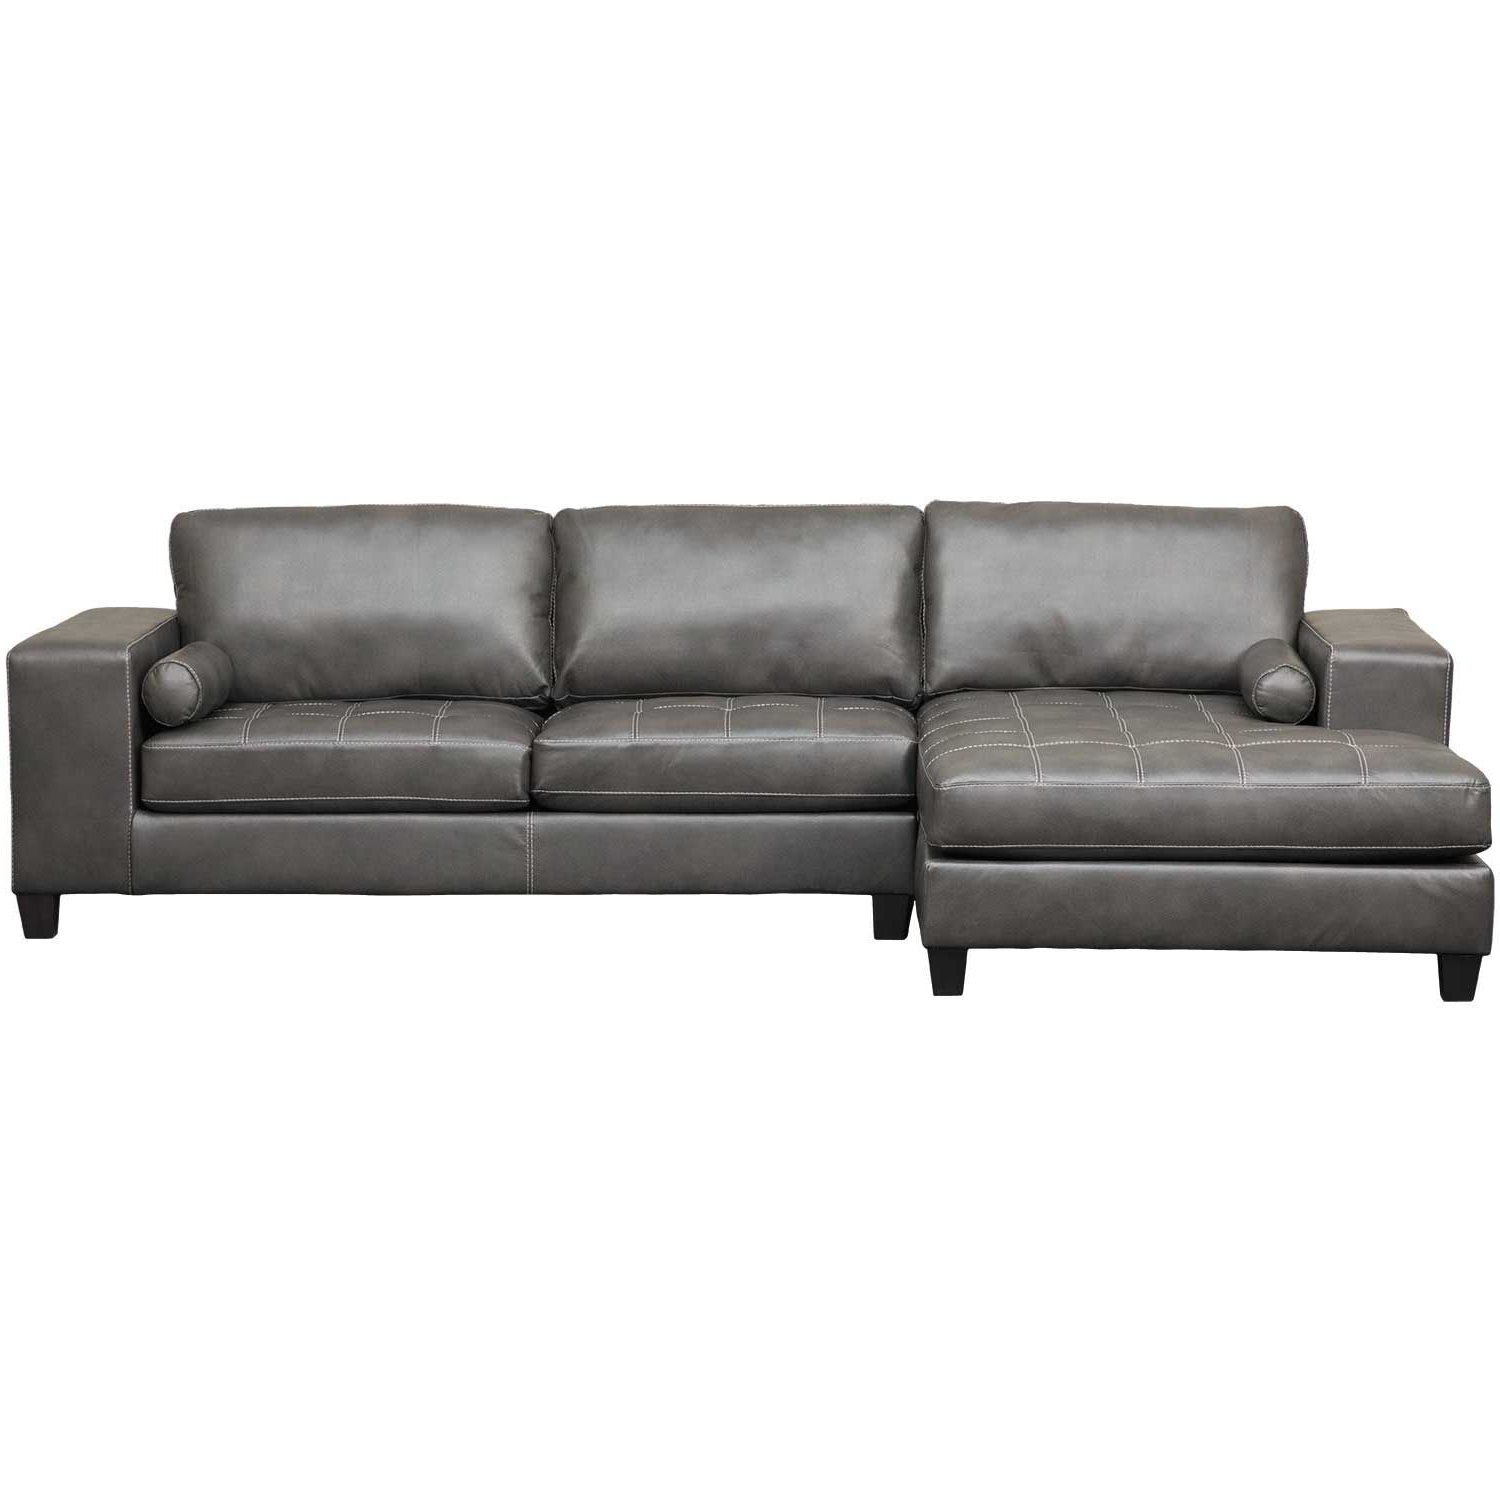 Tatum Dark Grey 2 Piece Sectionals With Laf Chaise Regarding Famous White Chaise Sofa Bed (View 16 of 20)